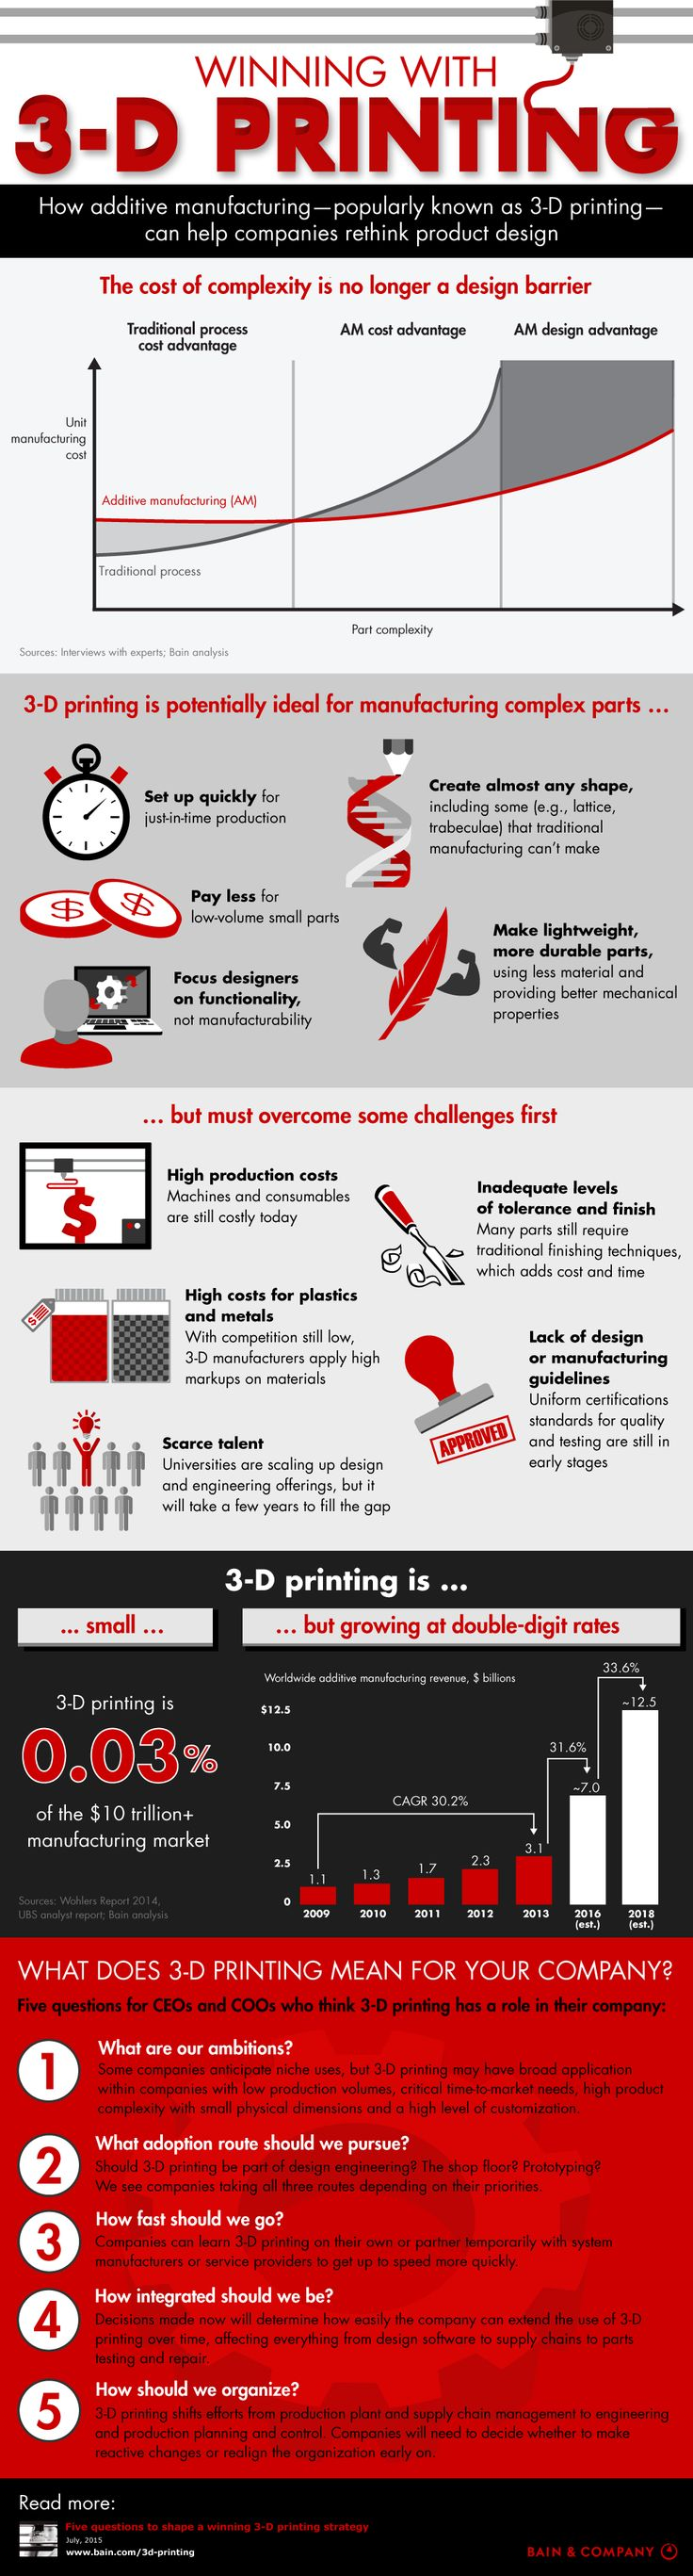 winning with 3-D printing - infographic